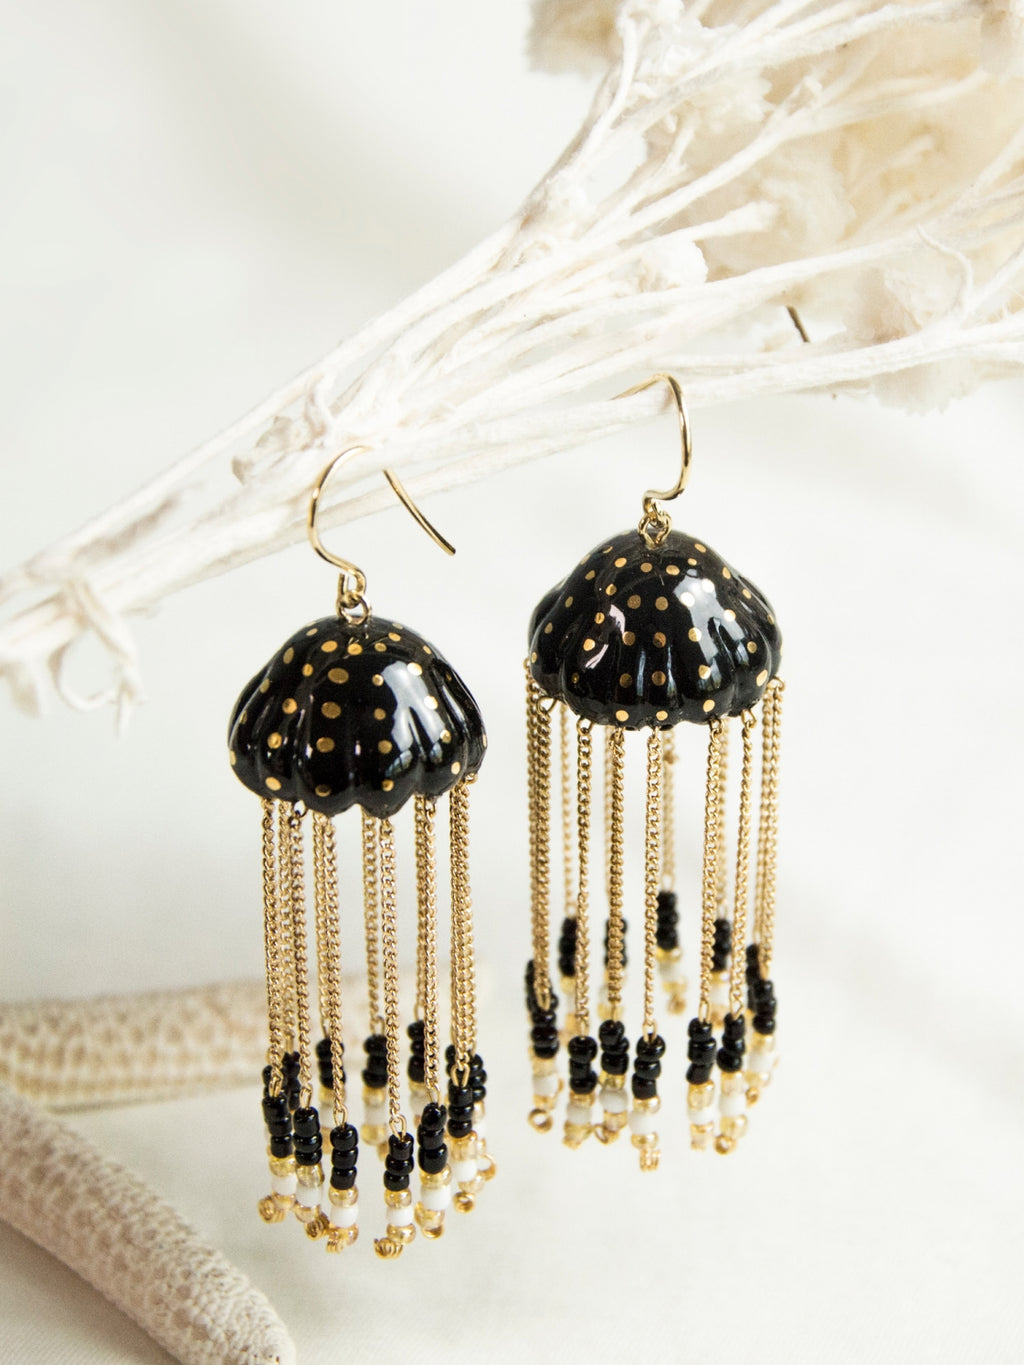 Black and Gold Jellyfish earrings